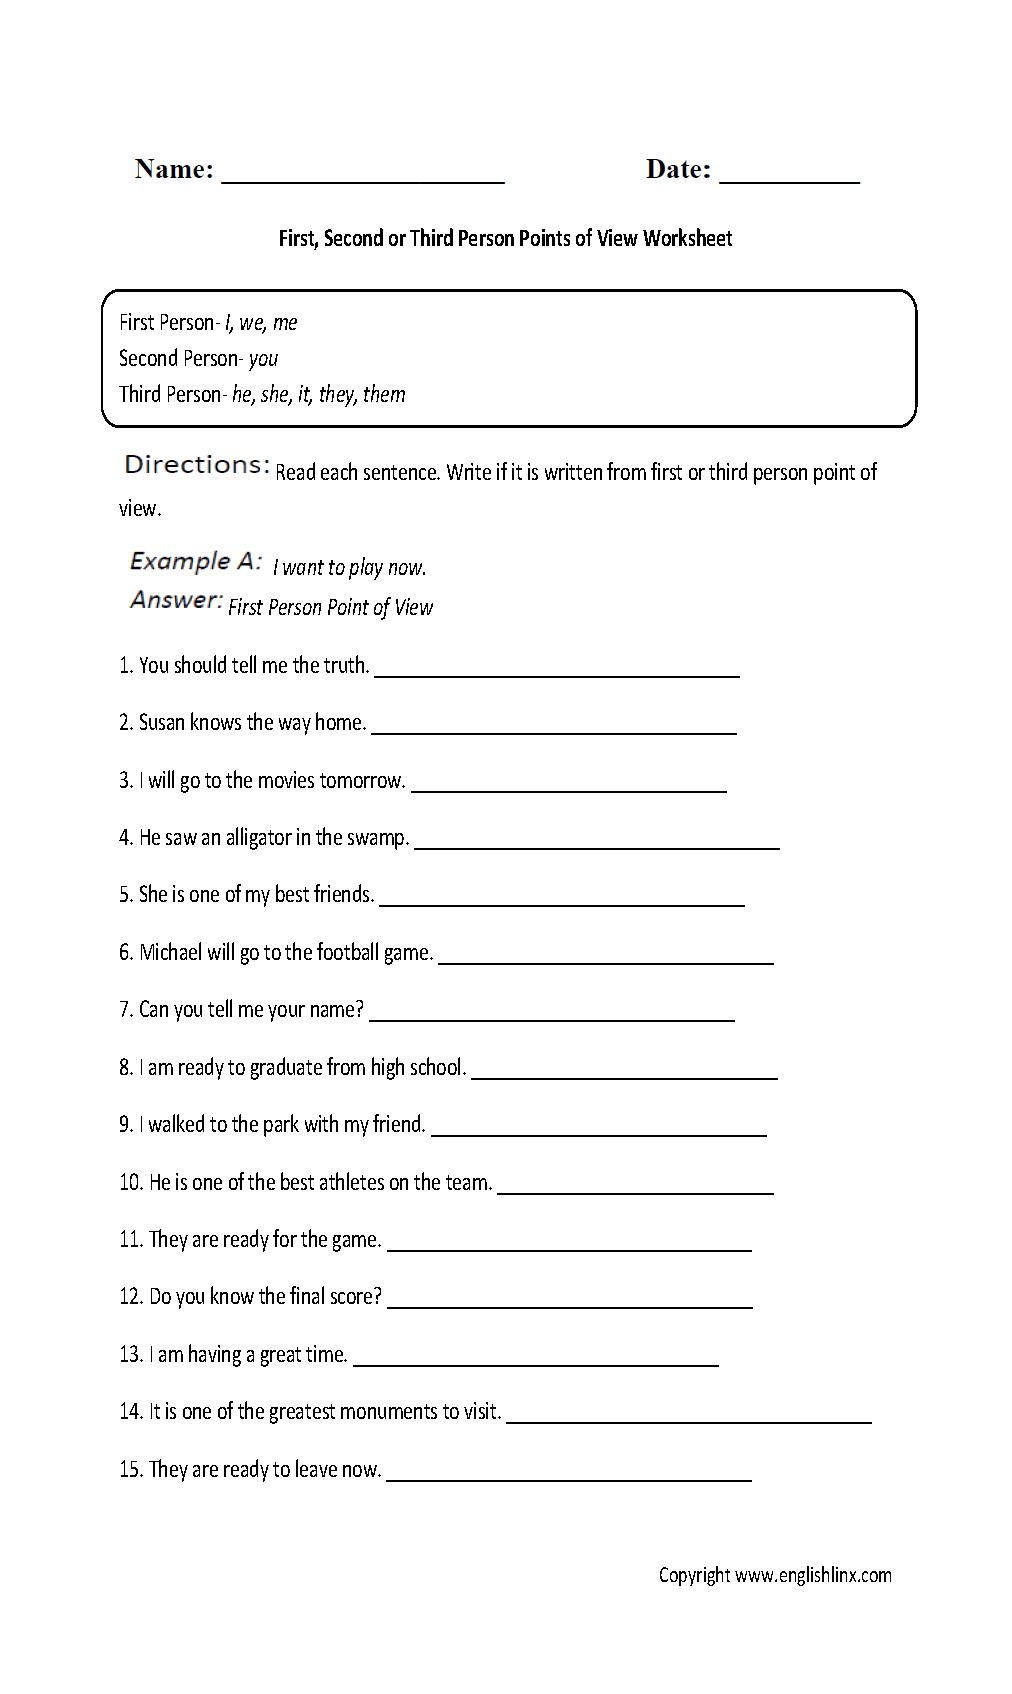 Weirdmailus  Scenic Englishlinxcom  Point Of View Worksheets With Great Point Of View Worksheet With Divine Worksheet On Reflexive Pronouns Also Worksheets Days Of The Week In Addition Grade  Math Printable Worksheets And Vocabulary Worksheets Free As Well As Bogglesworld Worksheets Additionally Proper And Common Noun Worksheets From Englishlinxcom With Weirdmailus  Great Englishlinxcom  Point Of View Worksheets With Divine Point Of View Worksheet And Scenic Worksheet On Reflexive Pronouns Also Worksheets Days Of The Week In Addition Grade  Math Printable Worksheets From Englishlinxcom